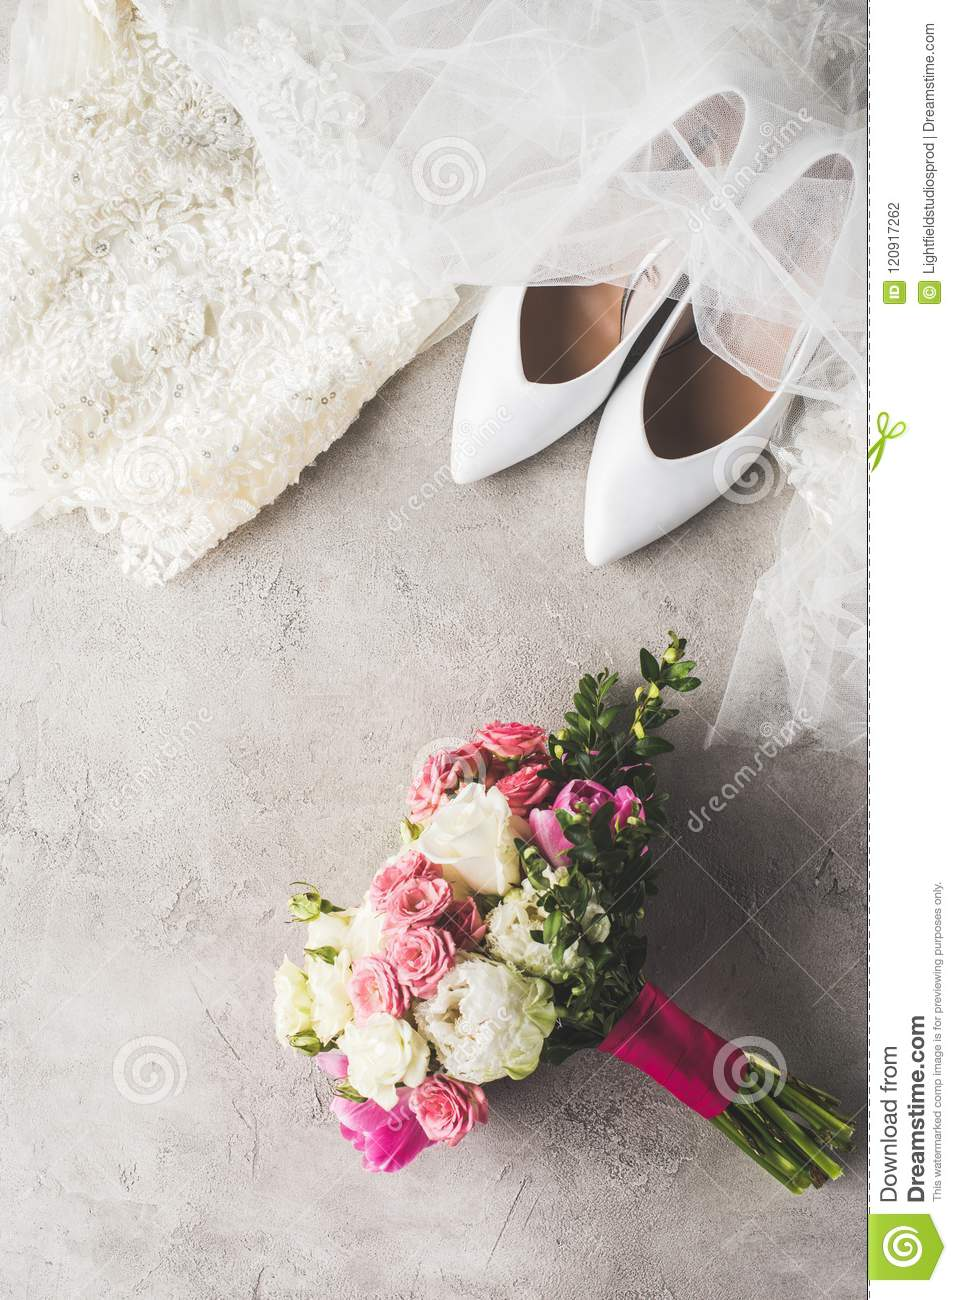 top view of wedding dress, shoes and bouquet